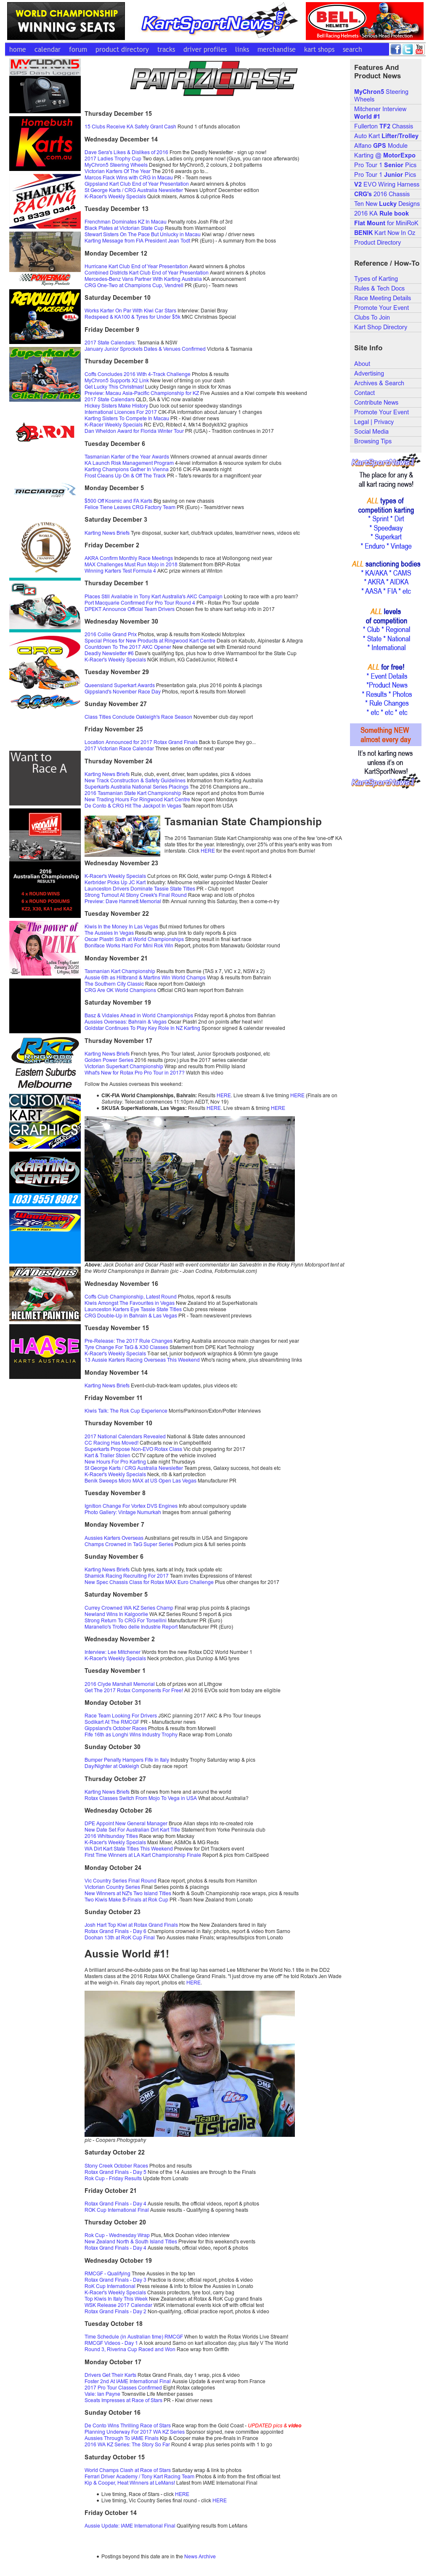 Kartsportnews Competitors, Revenue and Employees - Owler